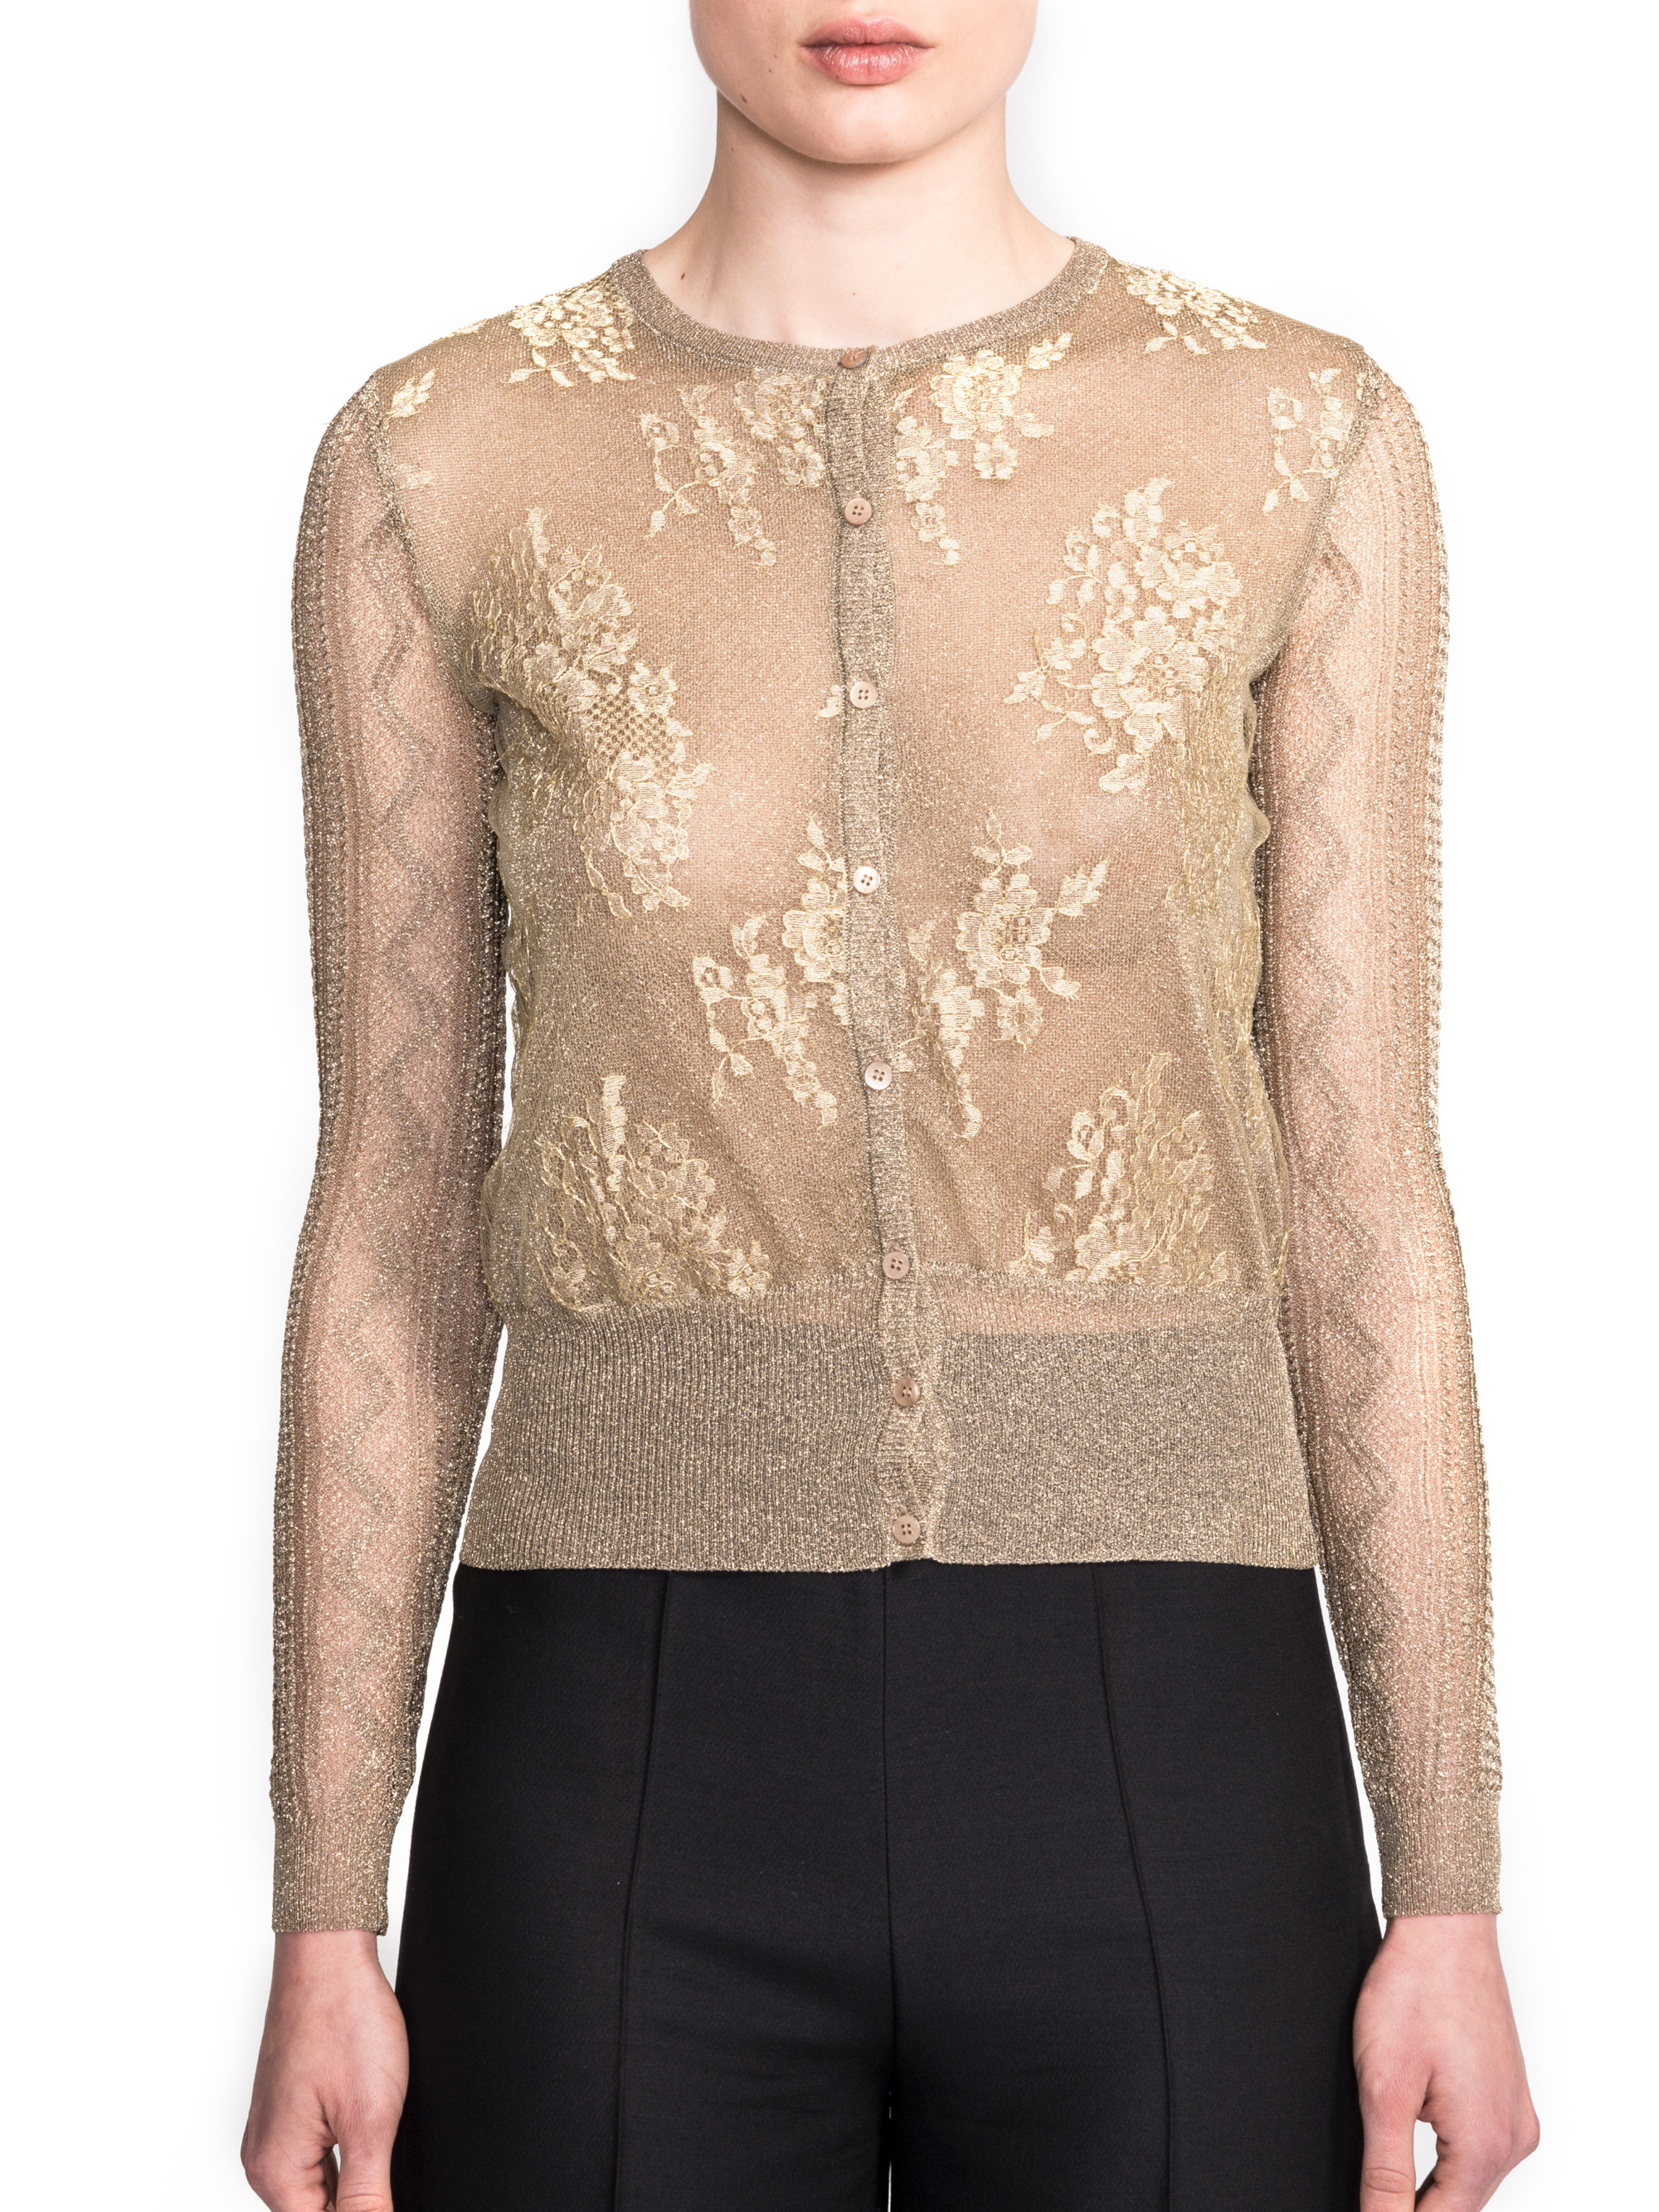 Valentino Multi-stitch Metallic Cardigan in Metallic | Lyst